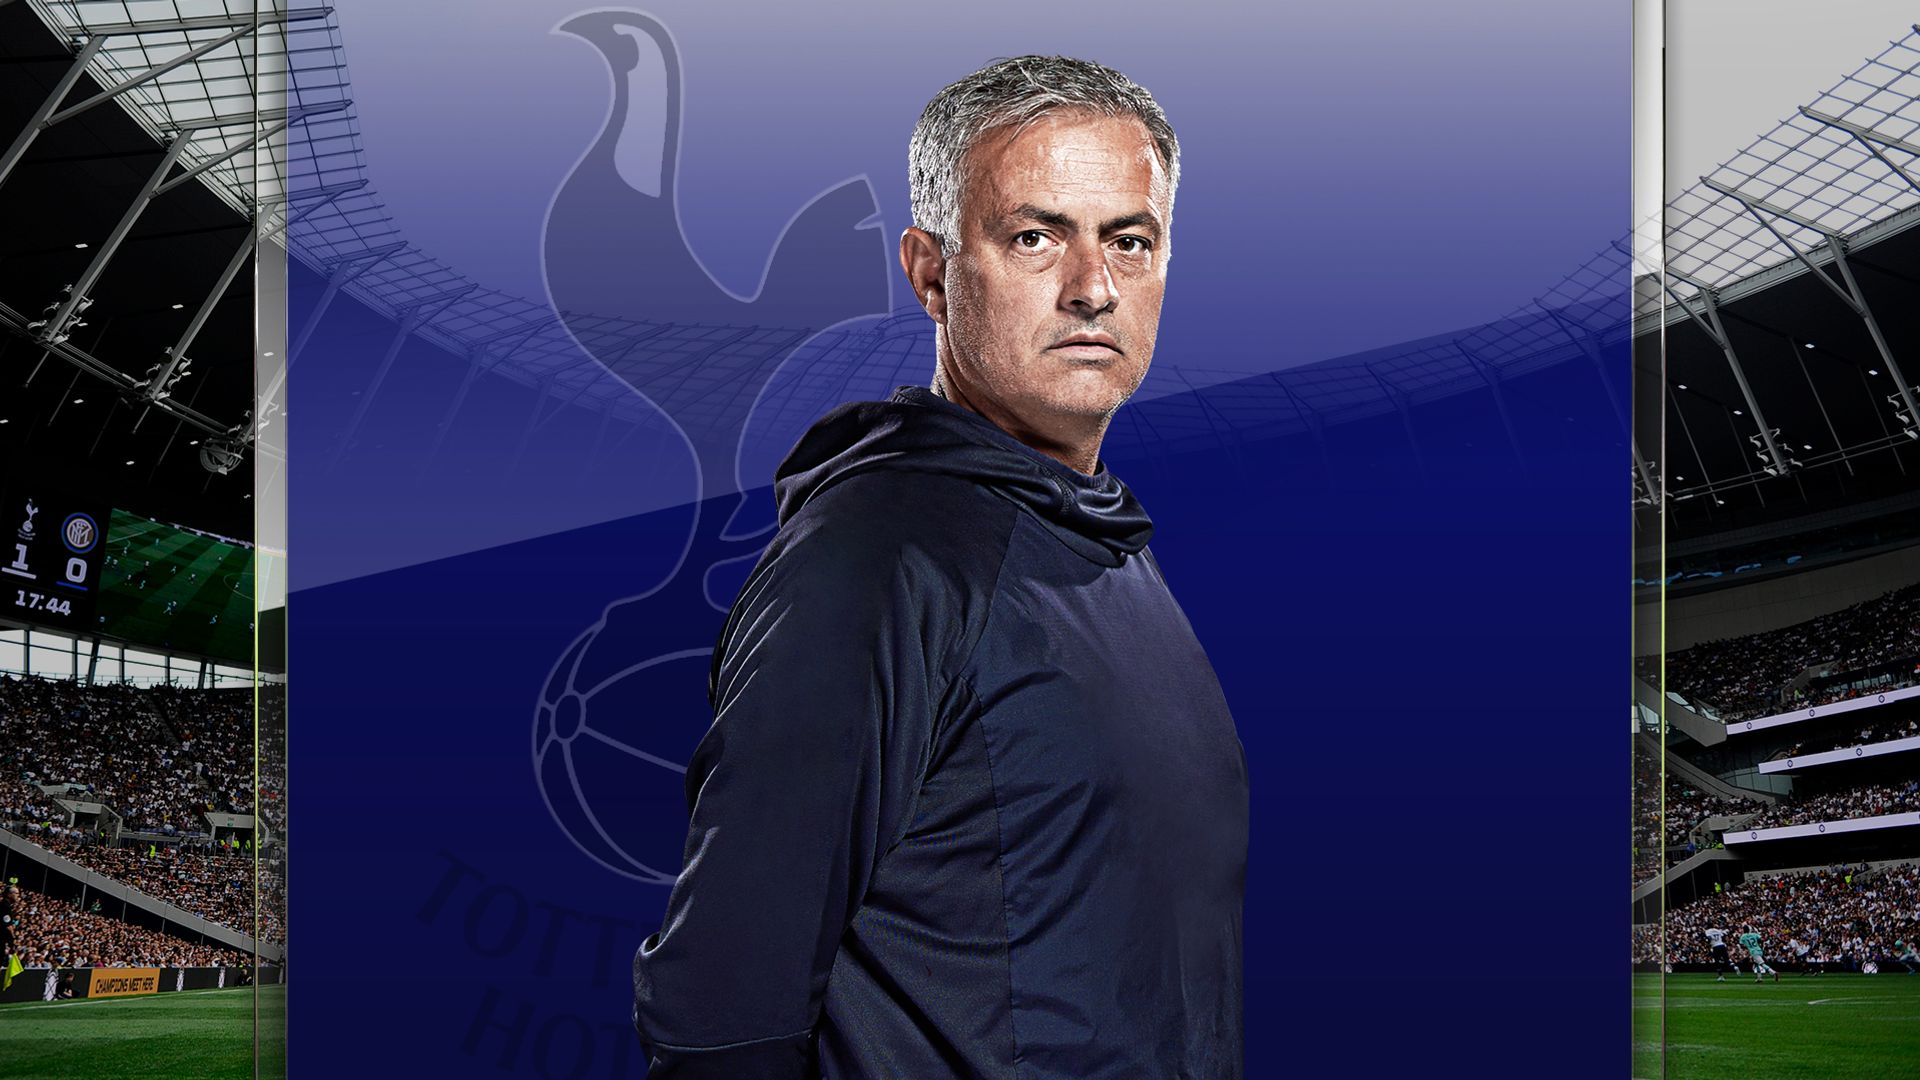 Is football standing still for Jose?